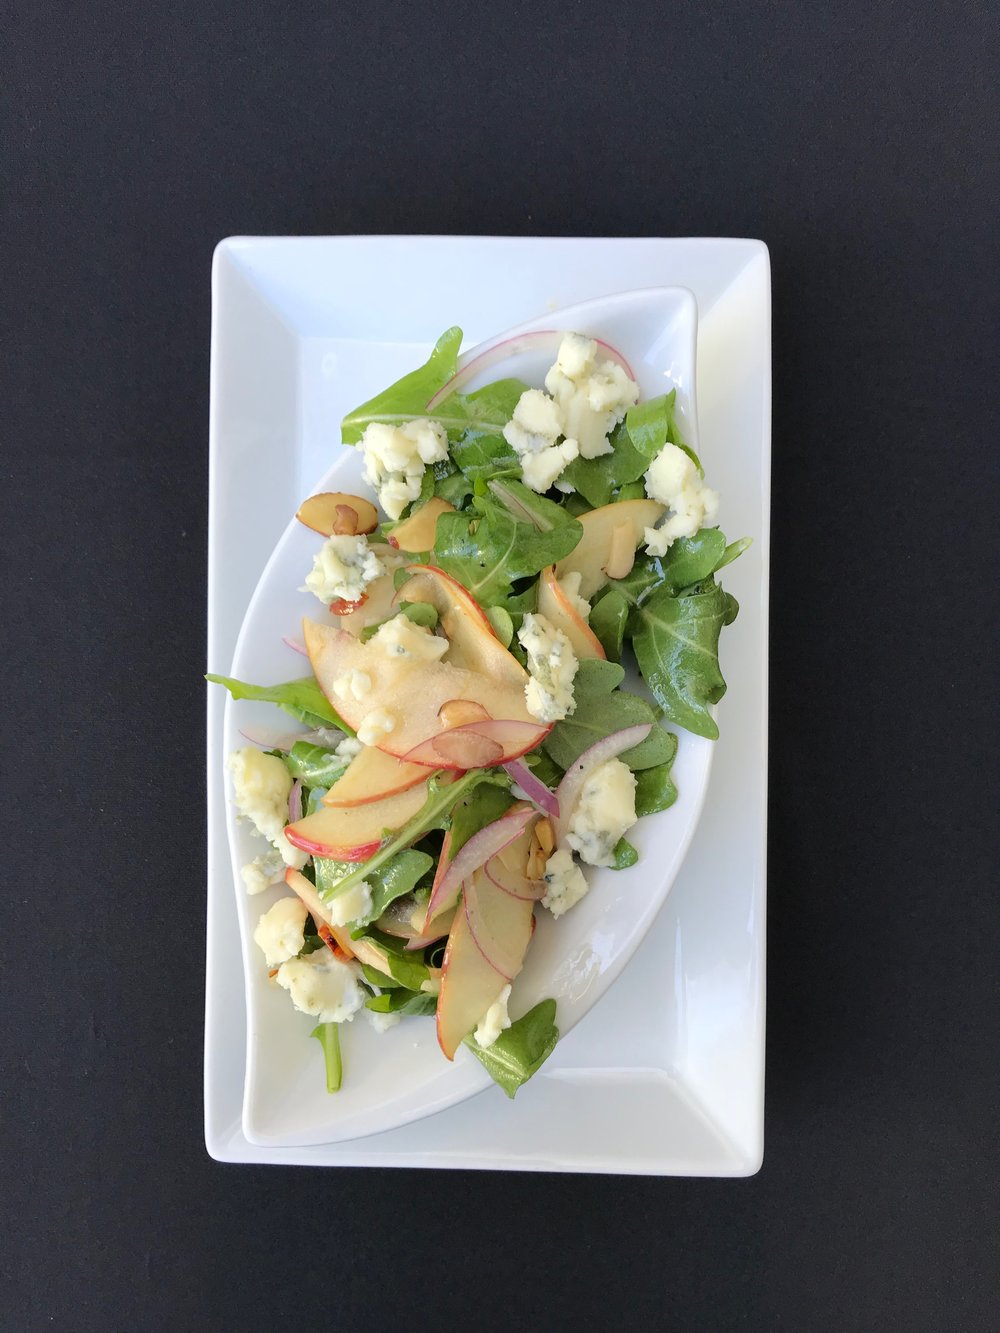 Roquefort & Arugula Salad - Fresh baby arugula tossed with apples, celery, sliced almonds, and a housemade vinaigrette and topped with Roquefort cheese